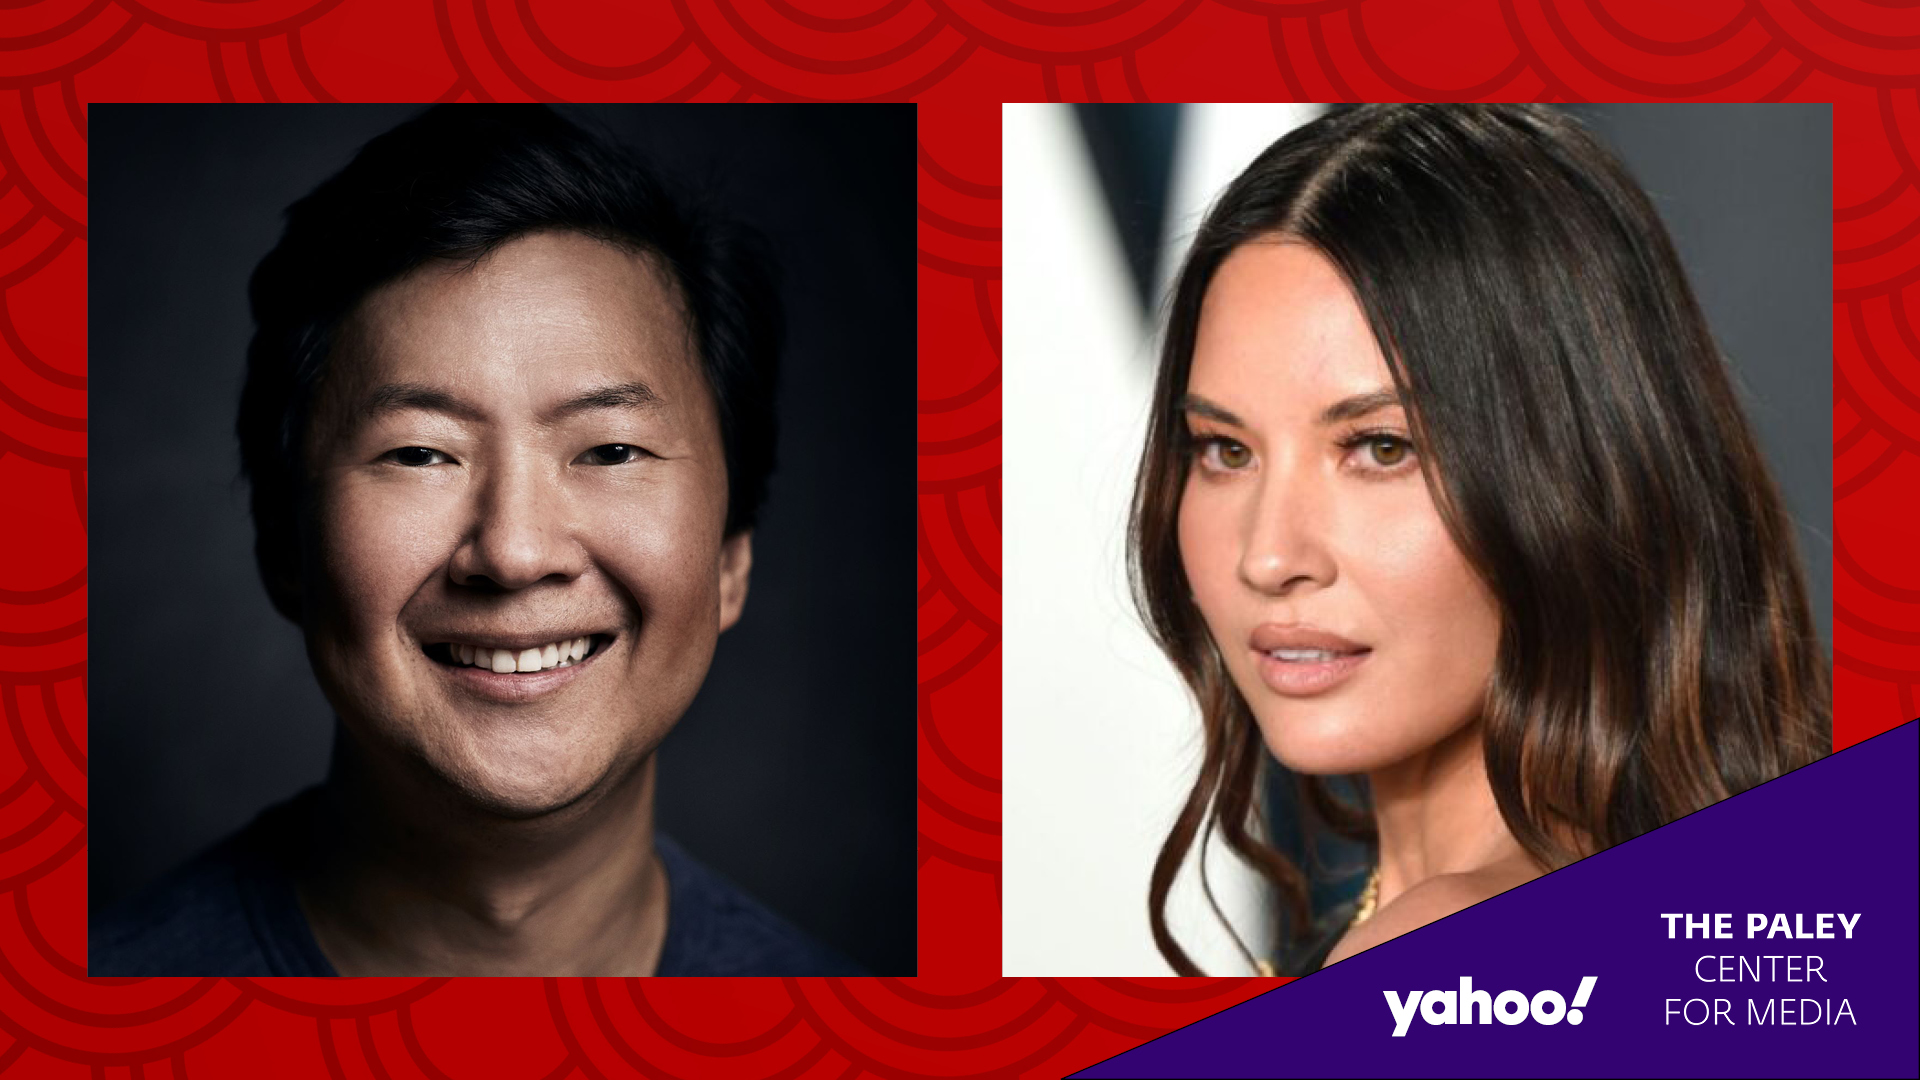 www.yahoo.com: PaleyImpact: Media's Role in Combating Hate and Violence Towards Asians and Pacific Islanders